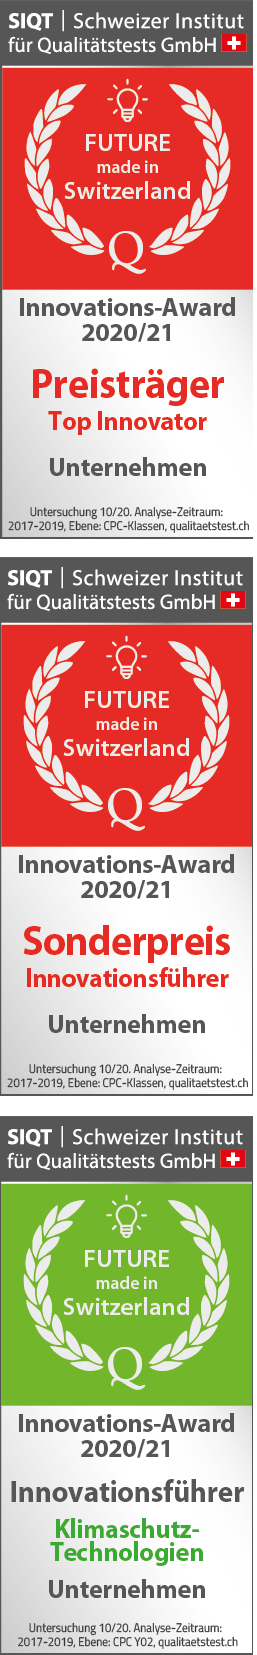 Innovations-Award 2020/21